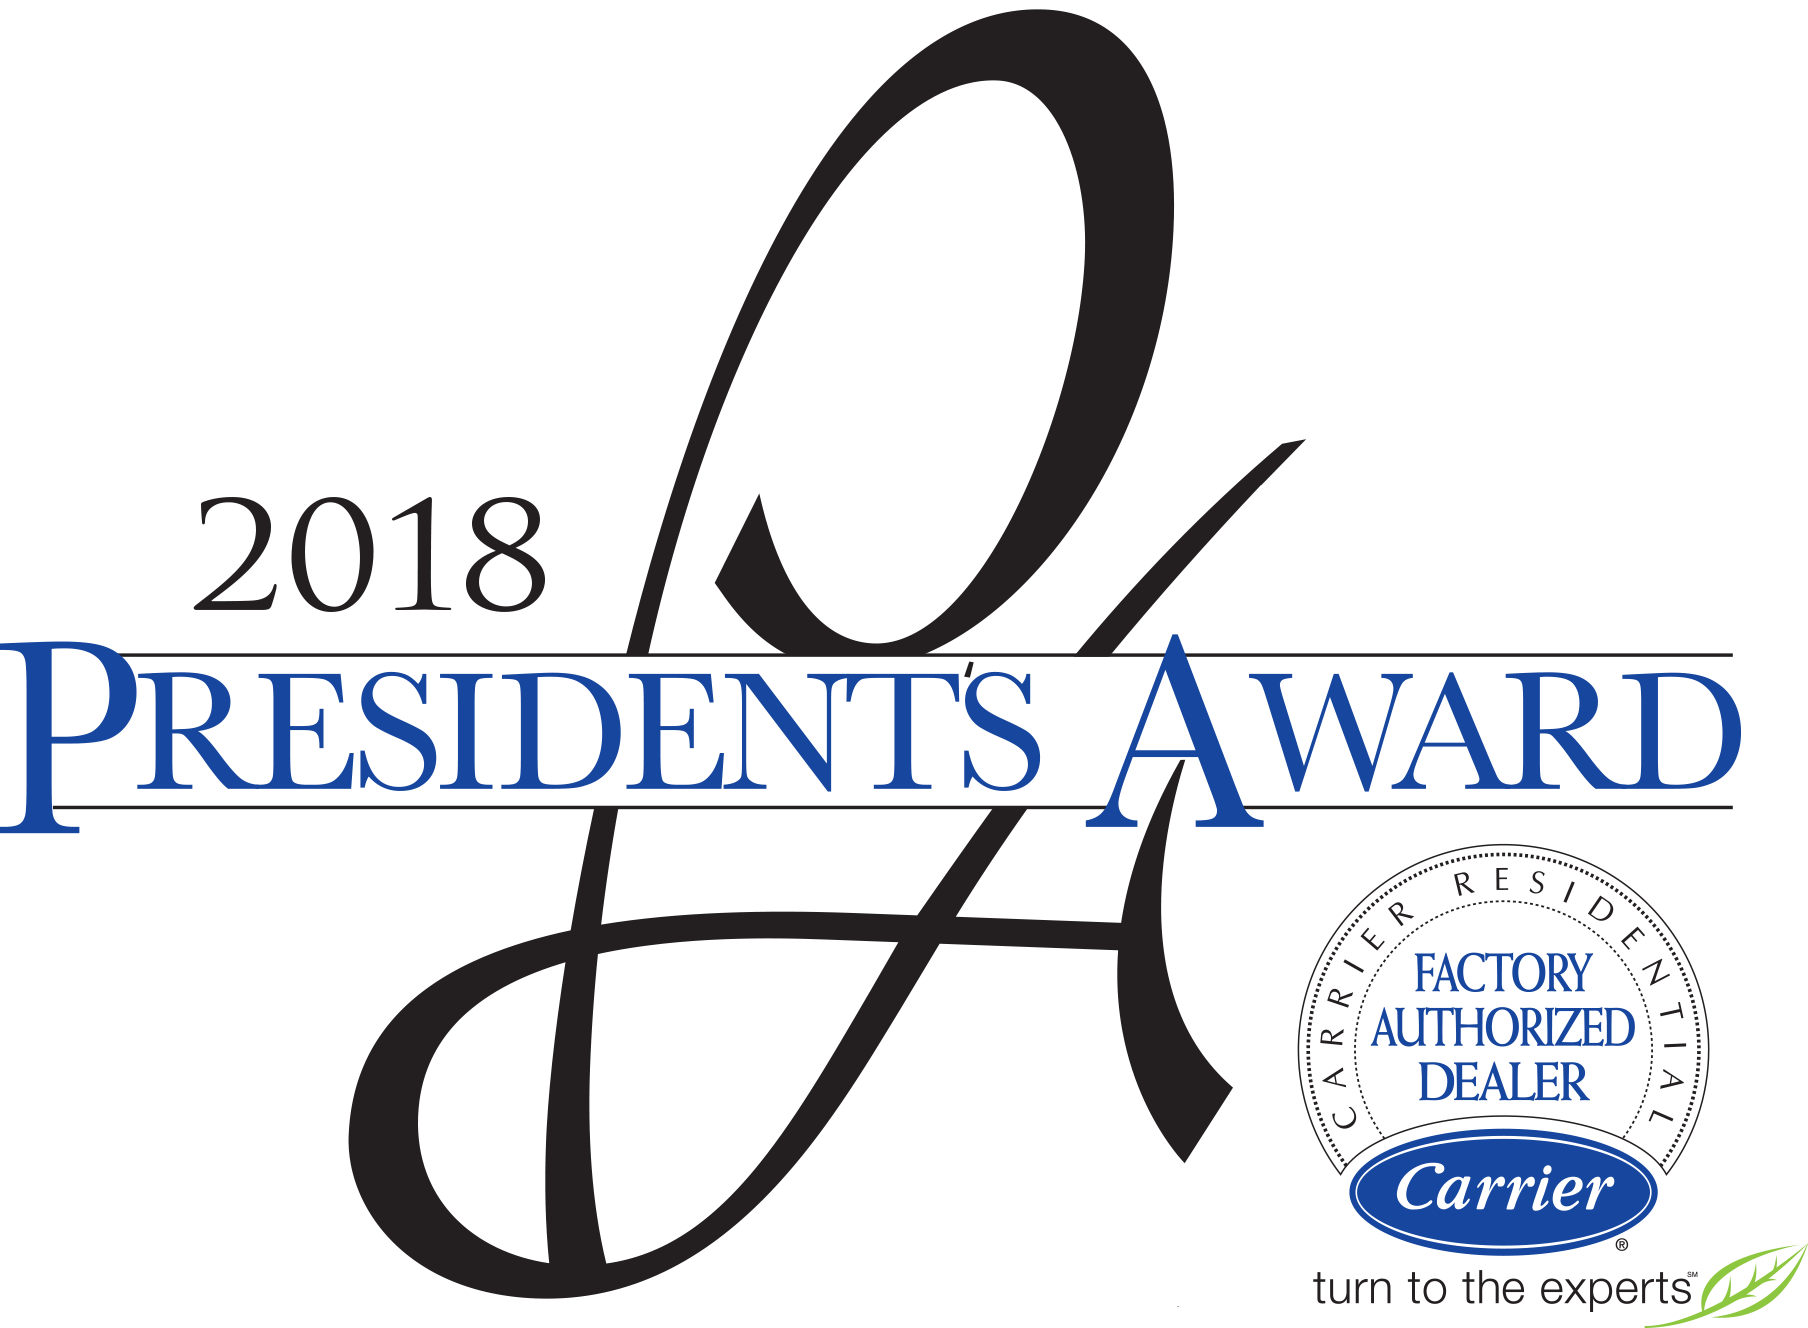 Carrier Presidential Award